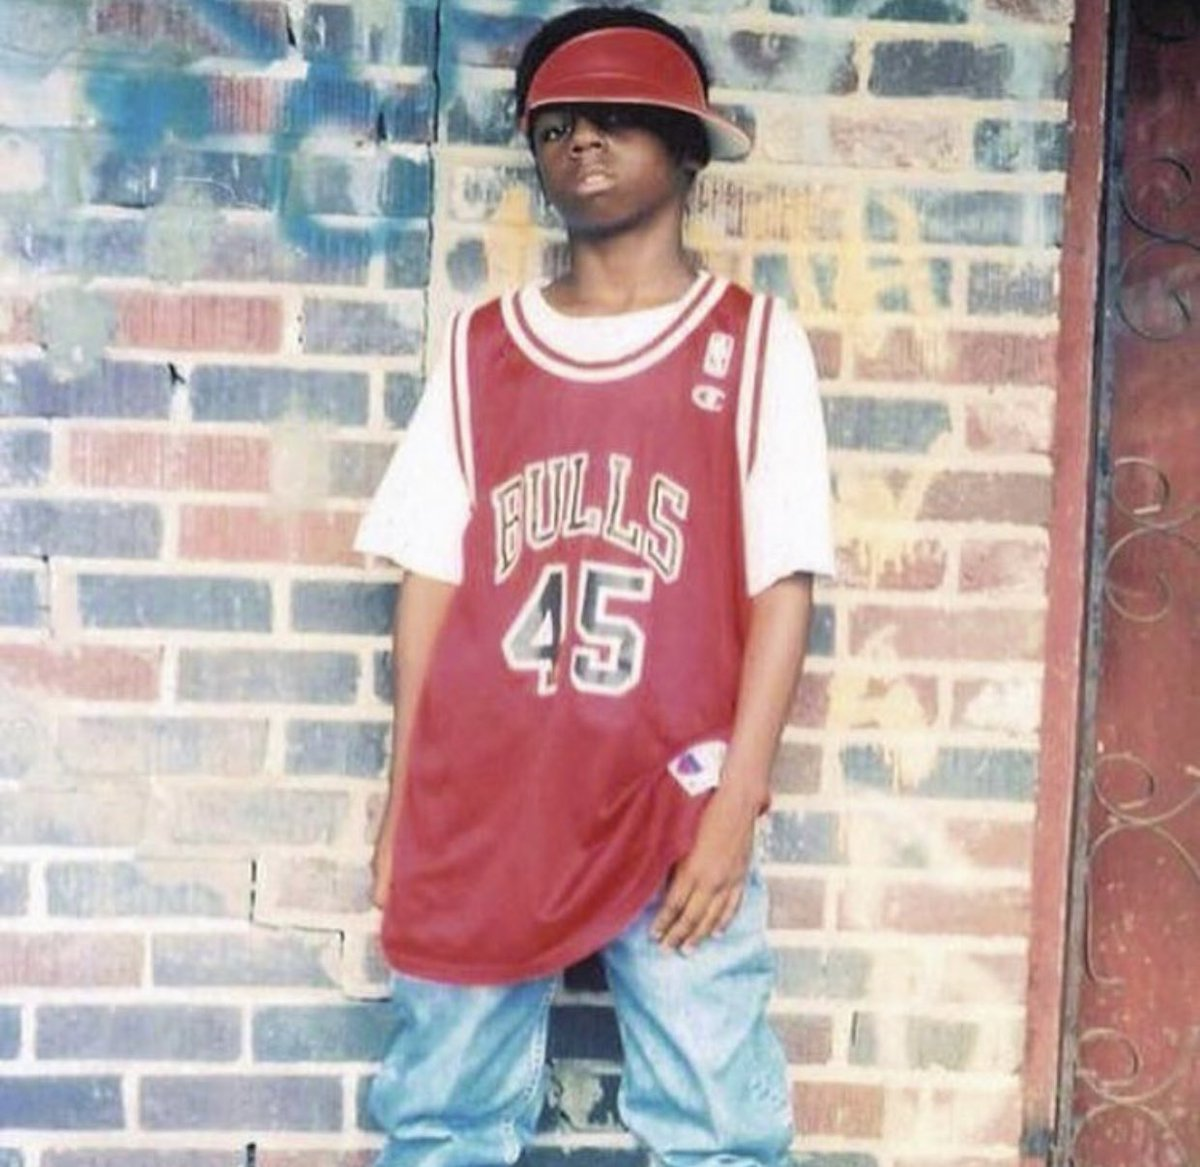 Start your Friday with a photo of young Wayne rocking a 45 Jordan jersey. Iconic. 📸